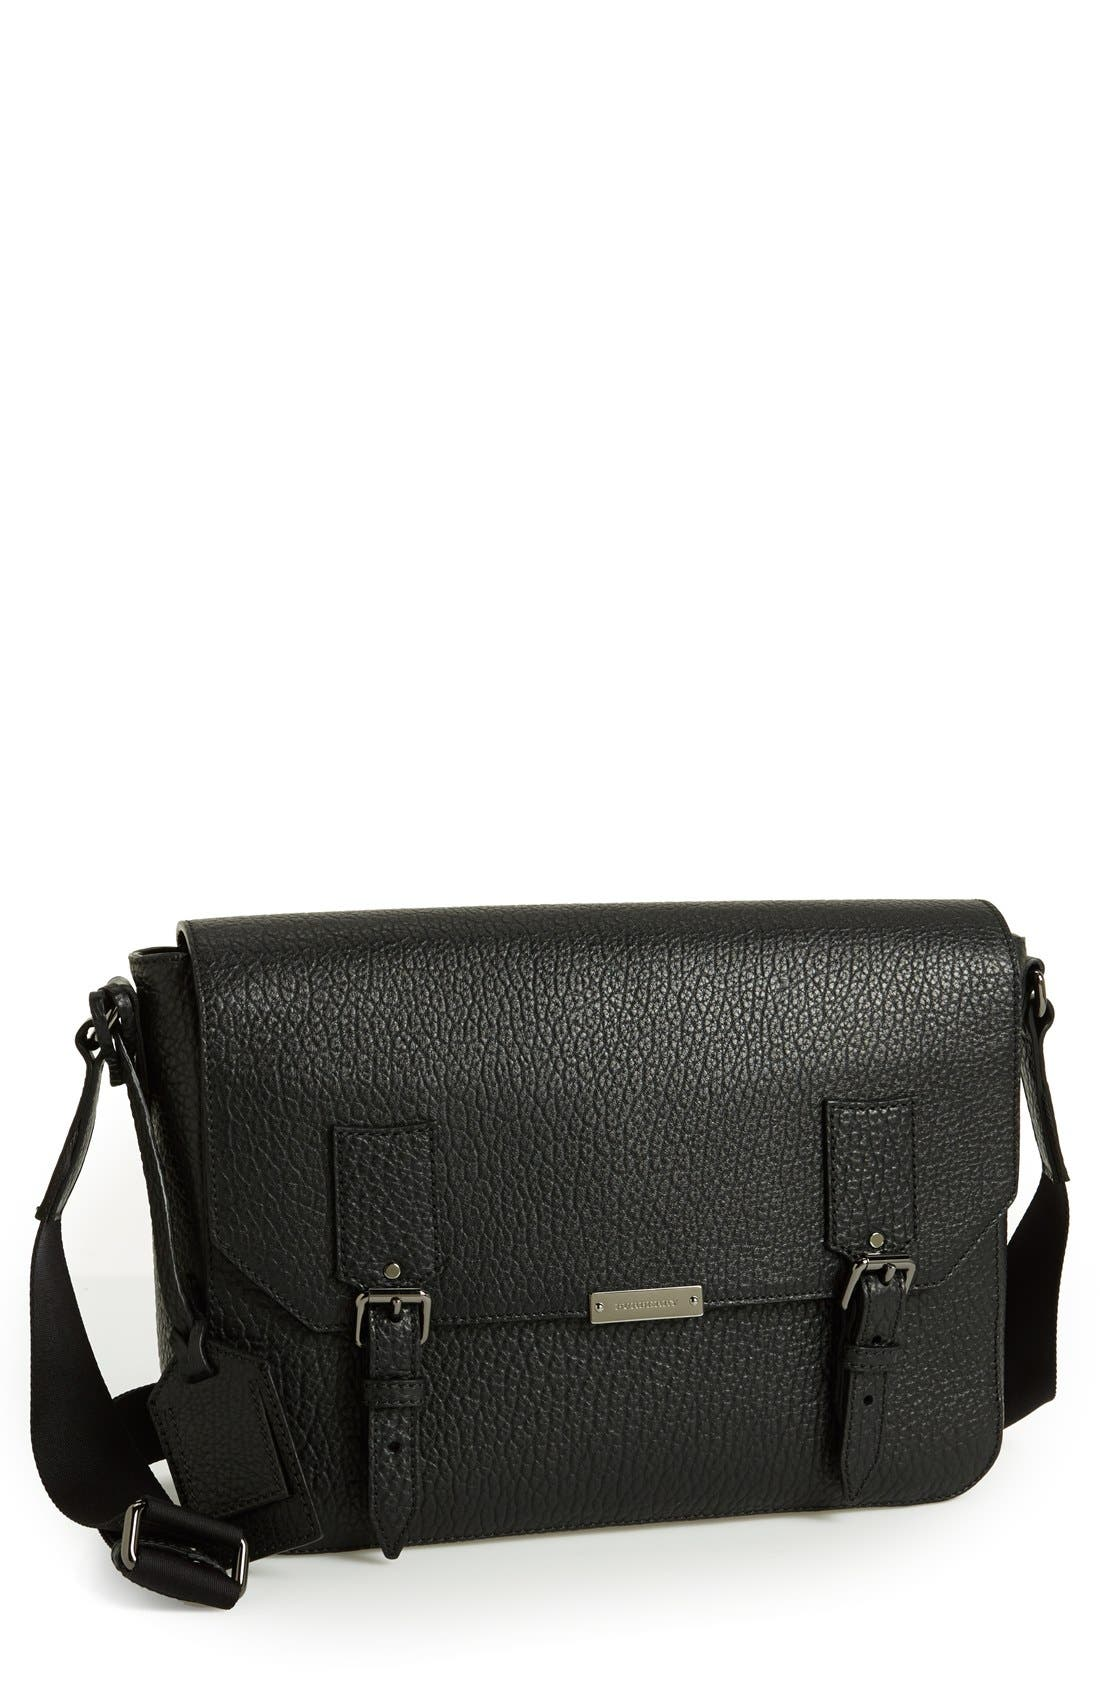 Alternate Image 1 Selected - Burberry 'Small Grifford' Leather Messenger Bag